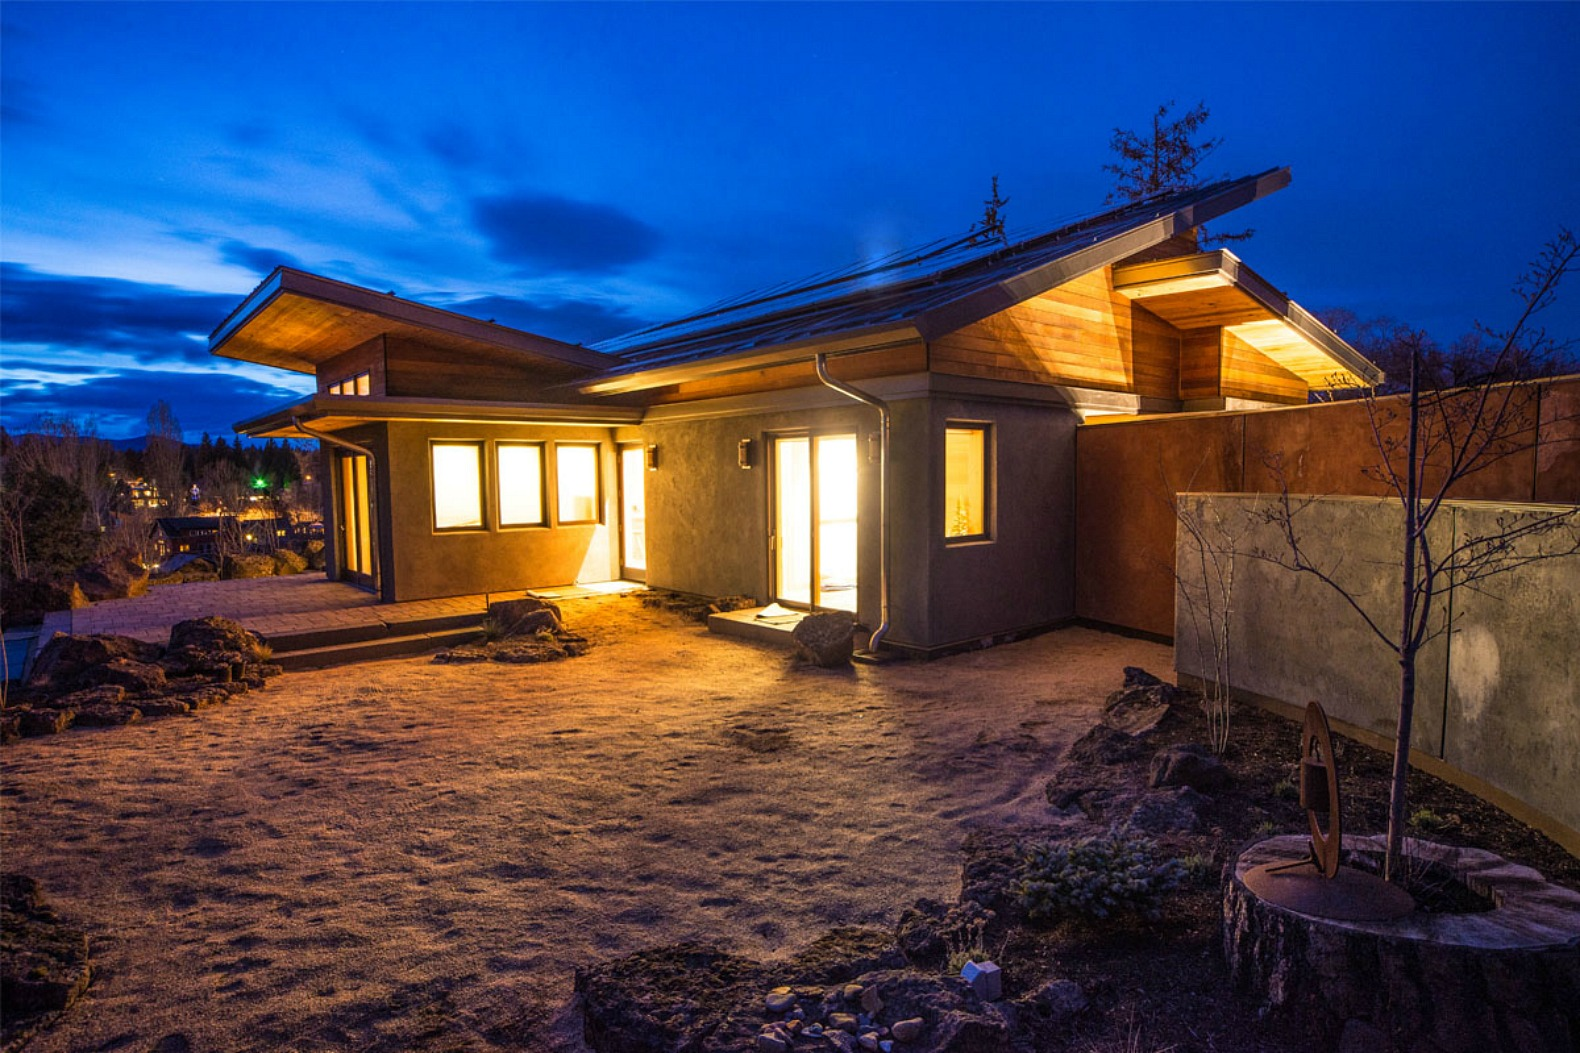 Oregon Couple Spends Years Building Their Net Zero